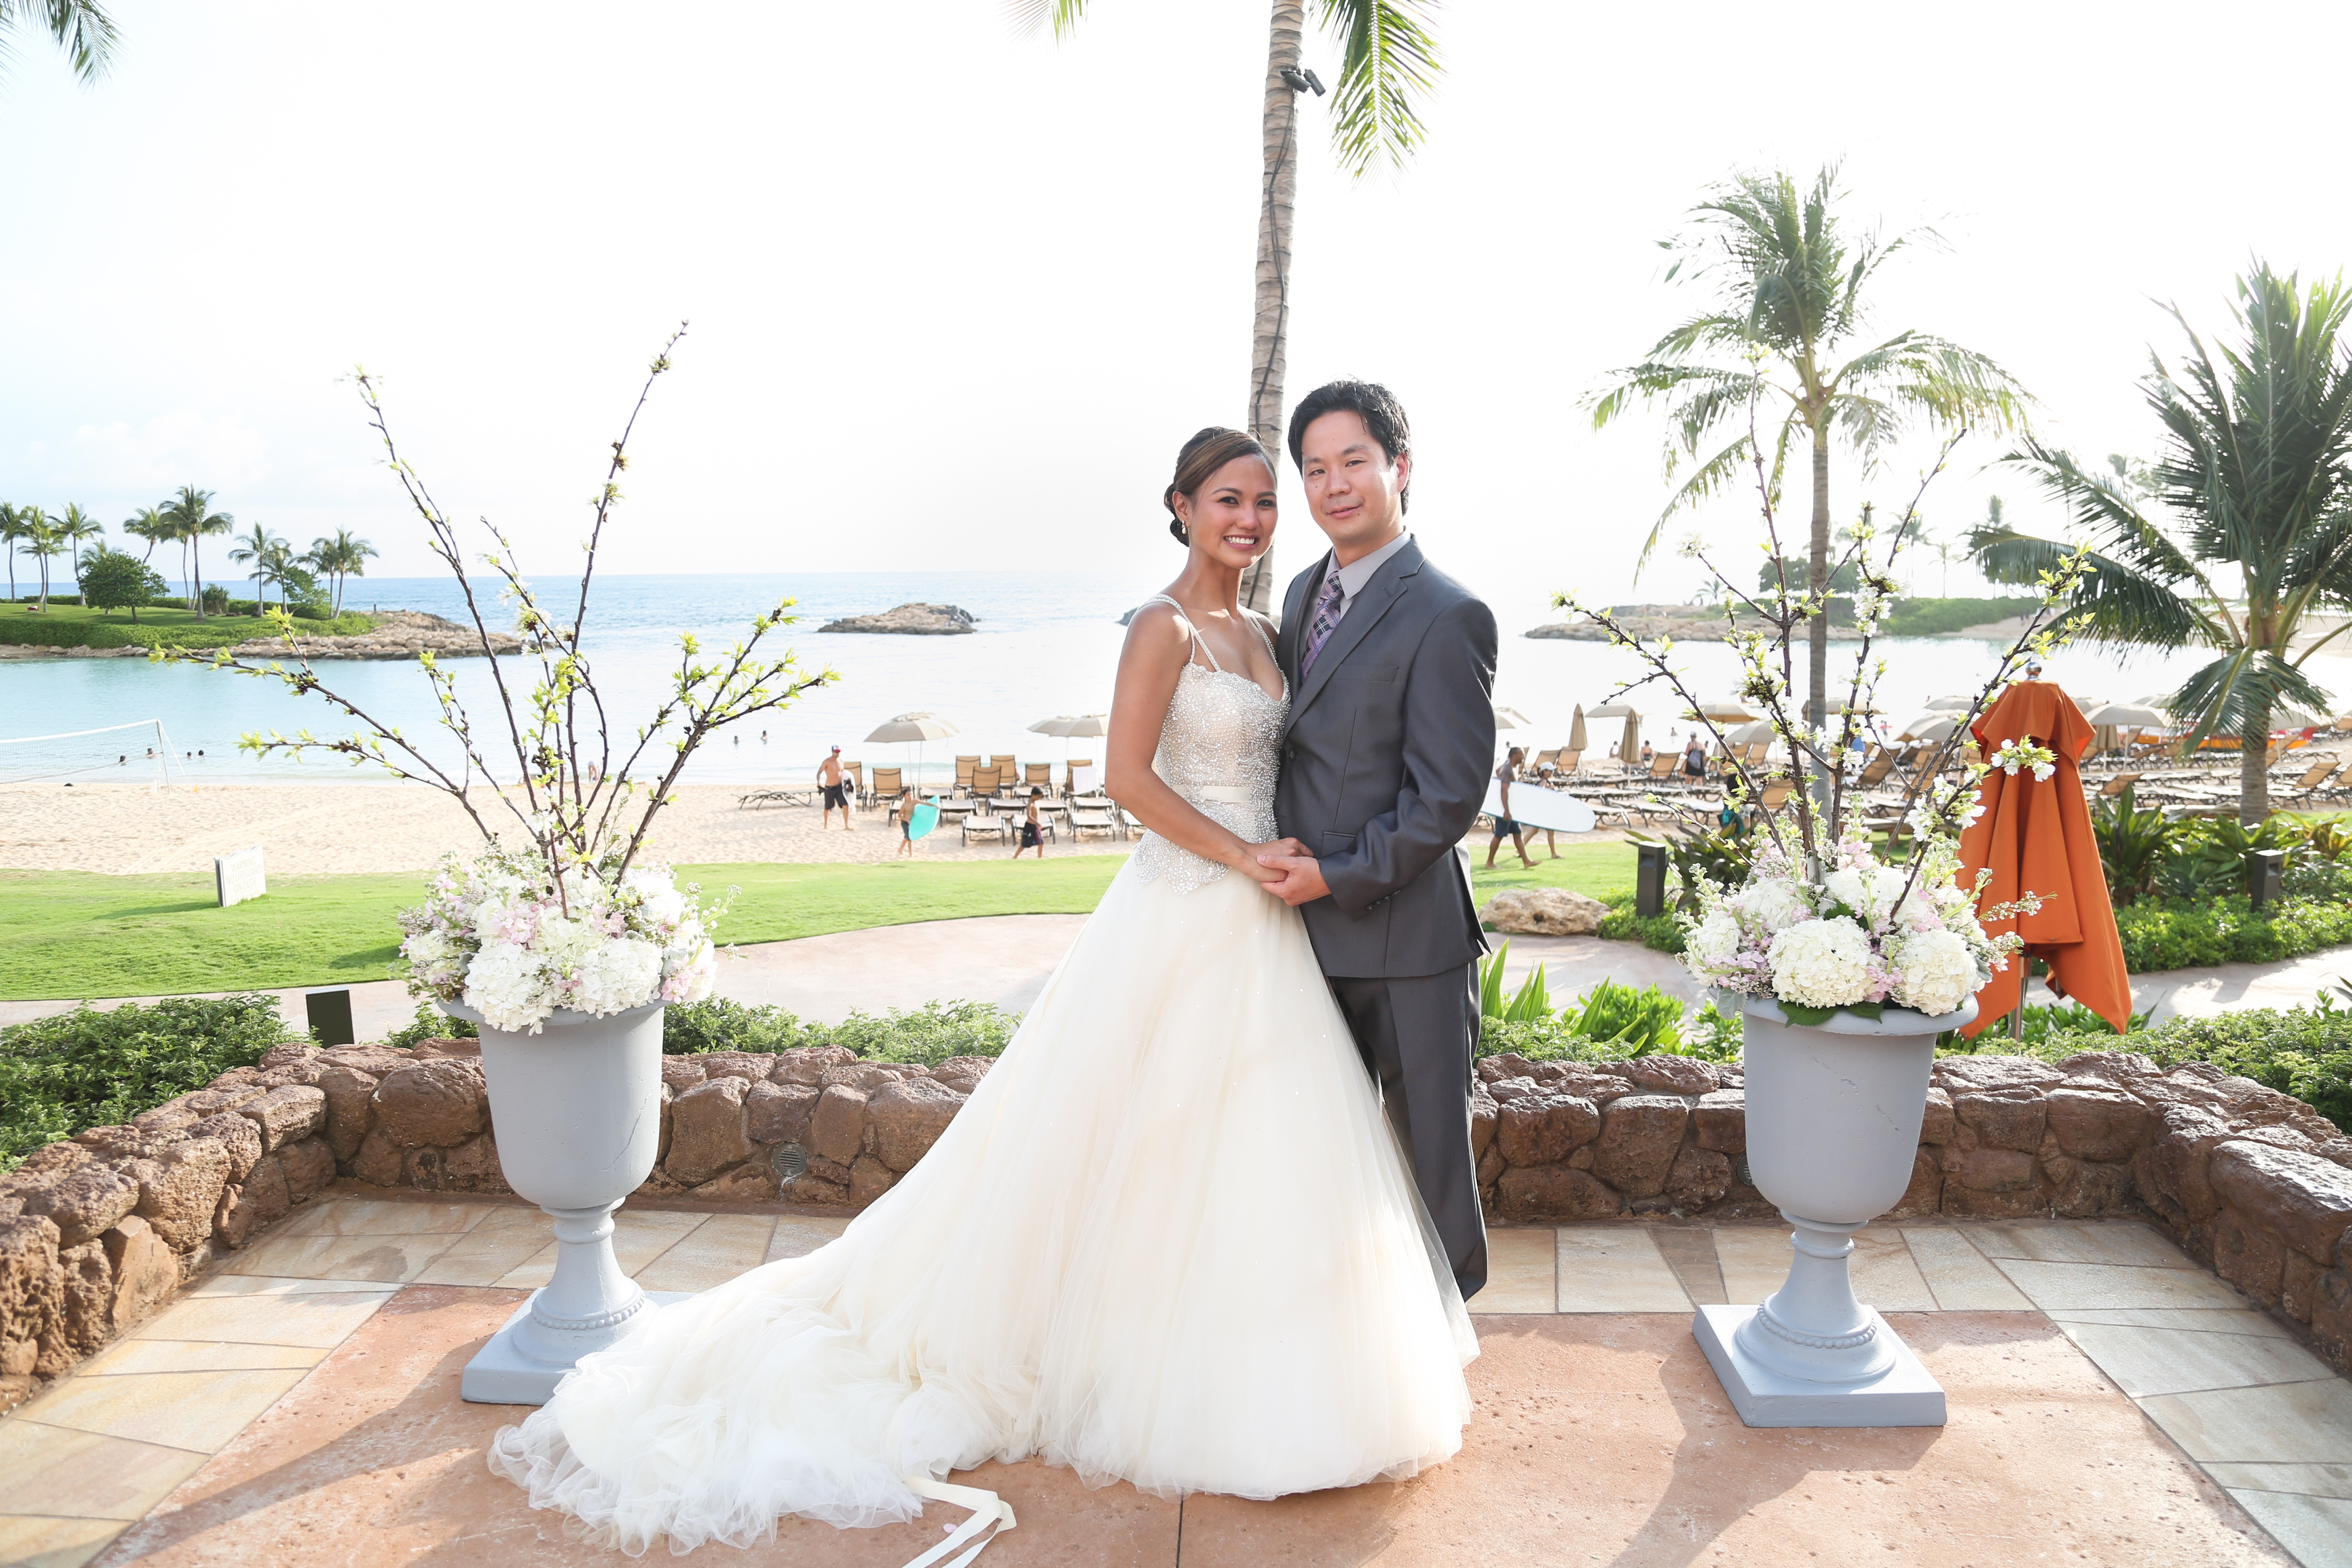 Edelwisa Married Tetsuya In May